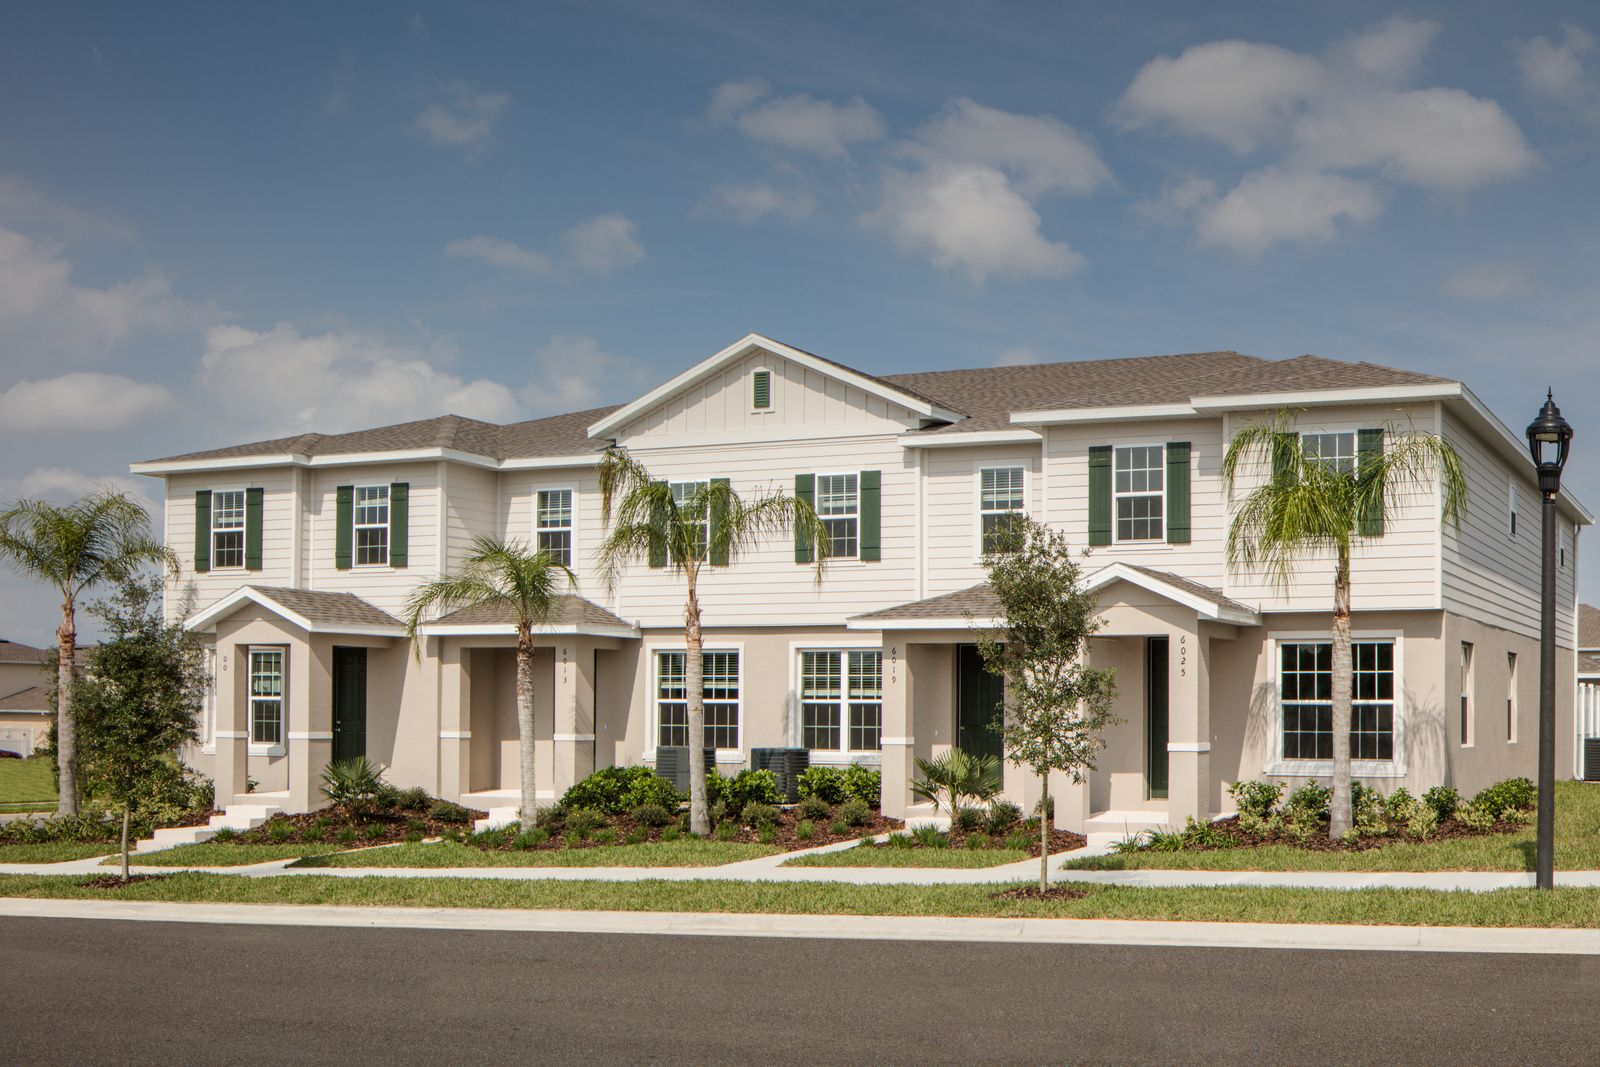 Elegant Townhome Living in Winter Garden, FL:Welcome to Low-maintenance living in highly desired Winter Garden. We are Open By Appointment Only!Schedule your one-on-one appointment todayto learn more about Hamilton Gardens - Townhomes.